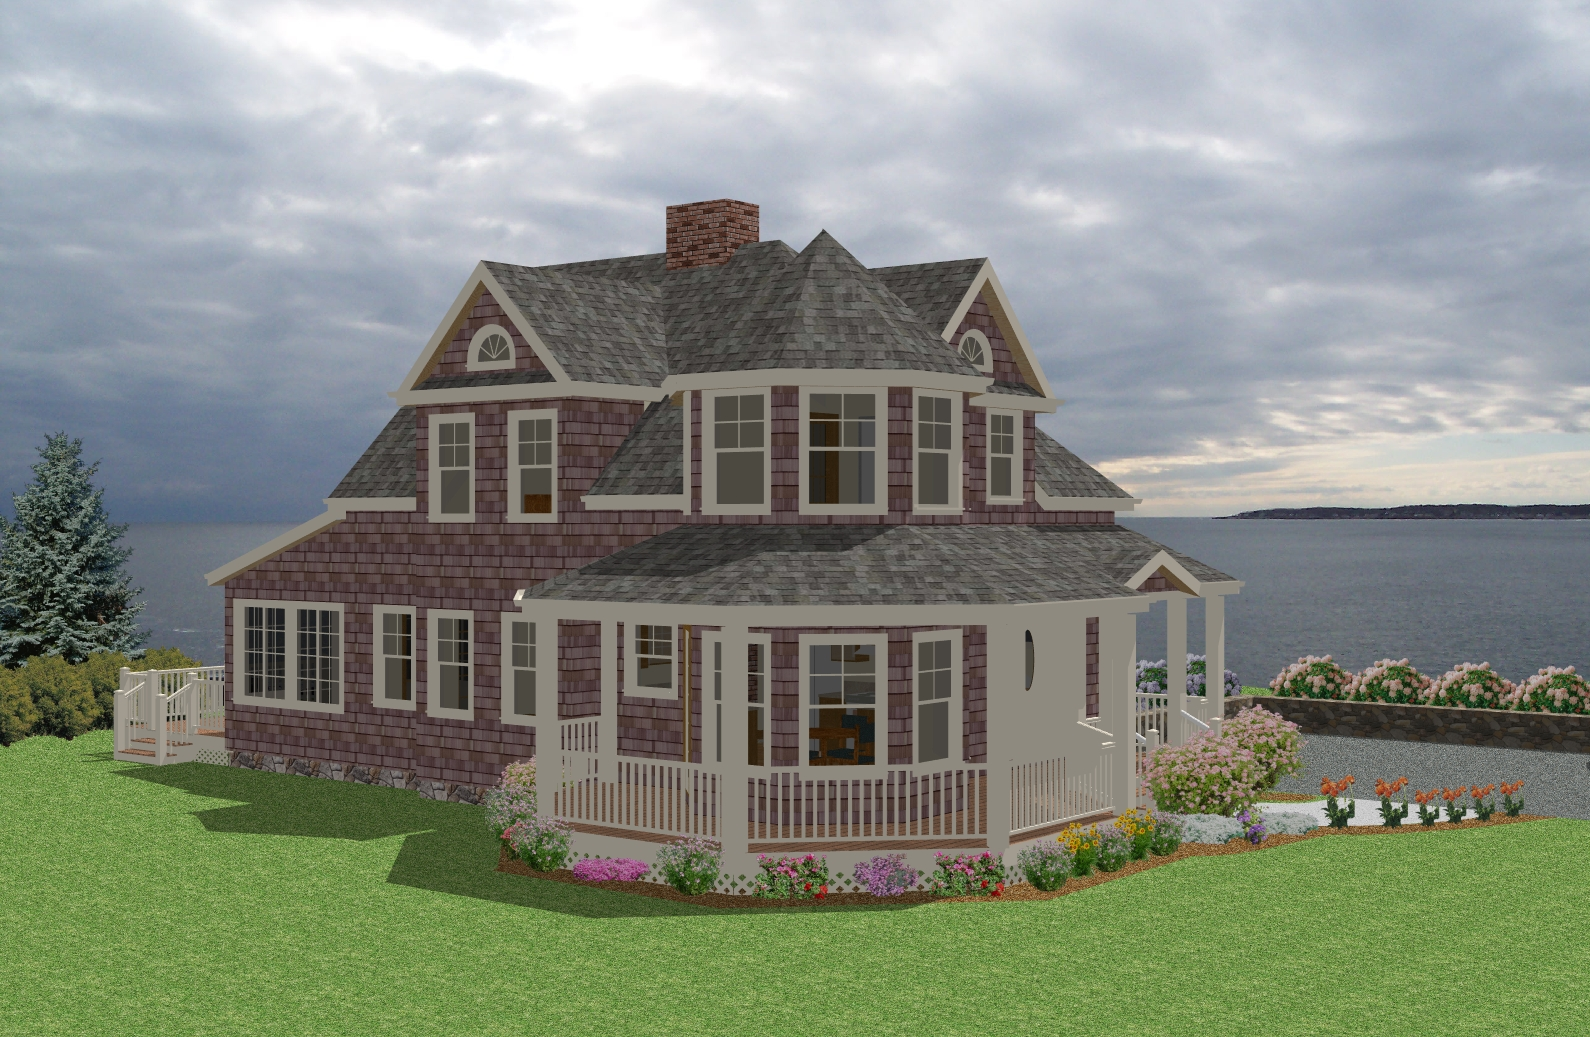 Seaside cottage traditional house plan new england for Seaside house plans designs